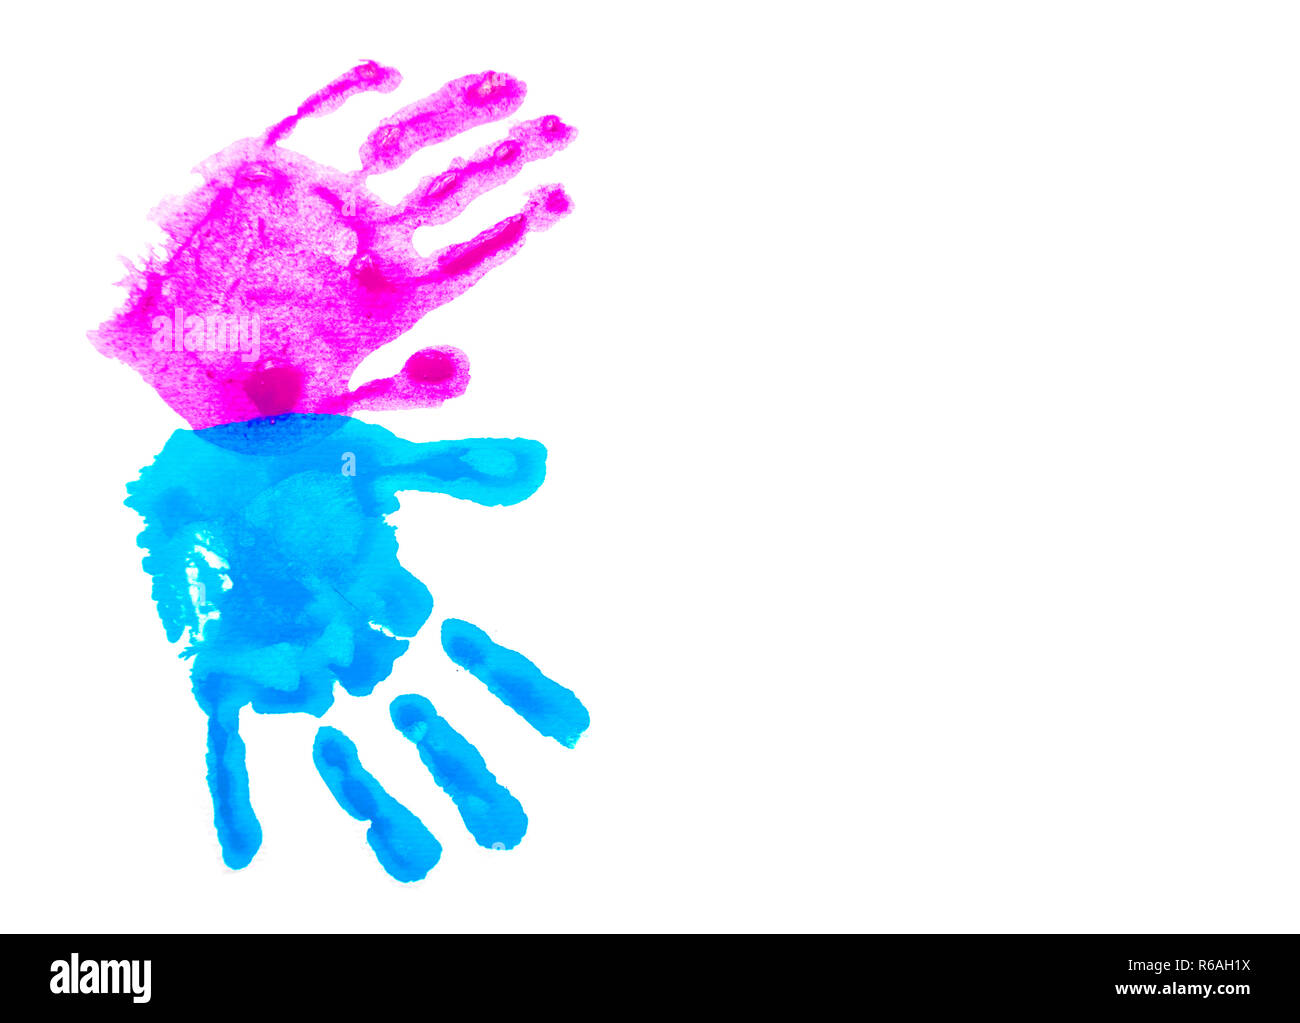 Colorful child's handprints isolated on white with copy space. World autism awareness day concept. - Stock Image